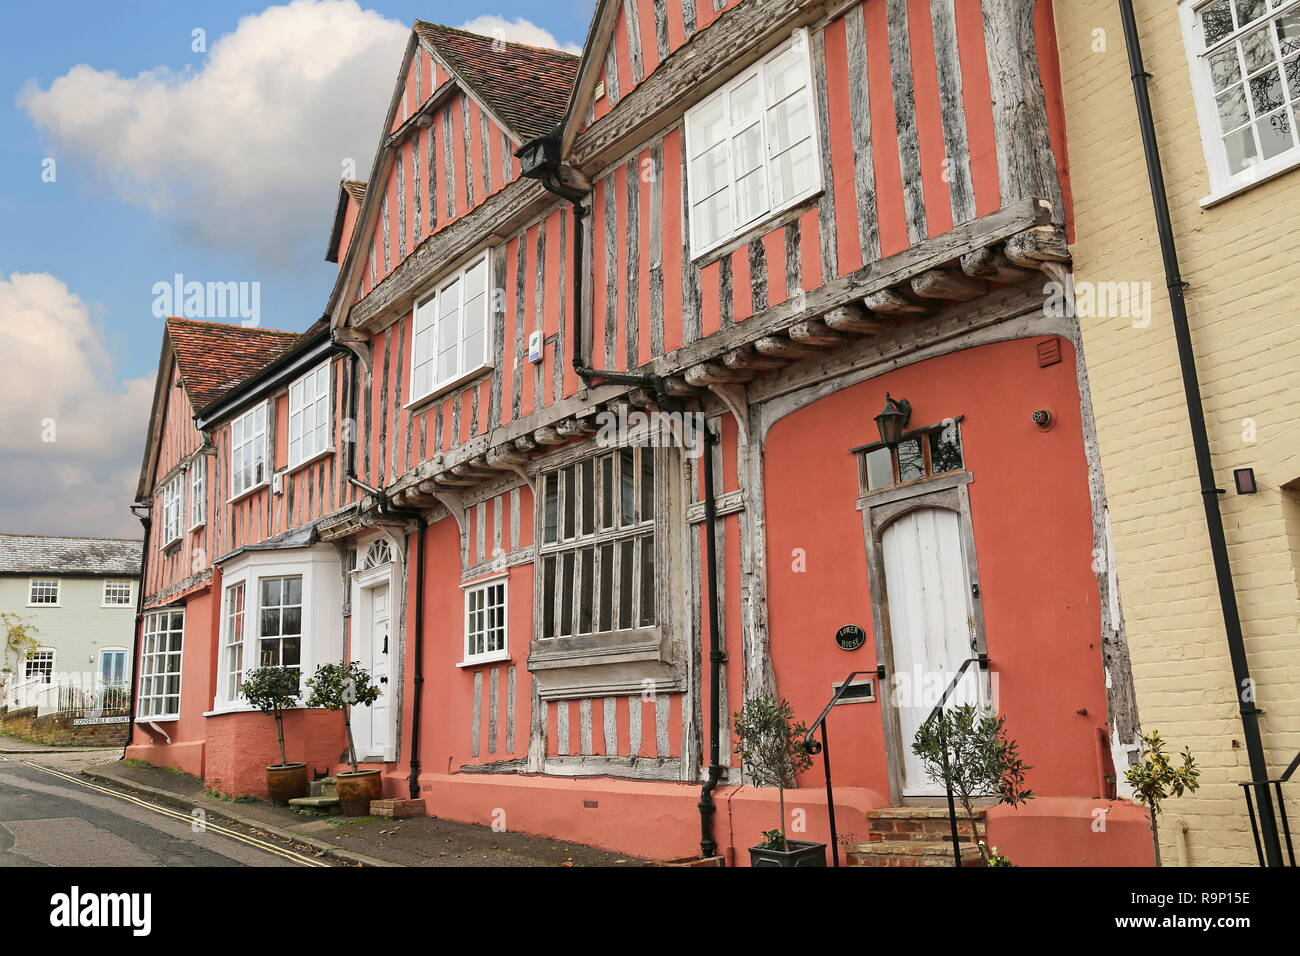 Old Grammar School, Barn Street, Lavenham, Babergh district, Suffolk, East Anglia, England, Great Britain, United Kingdom, UK, Europe - Stock Image